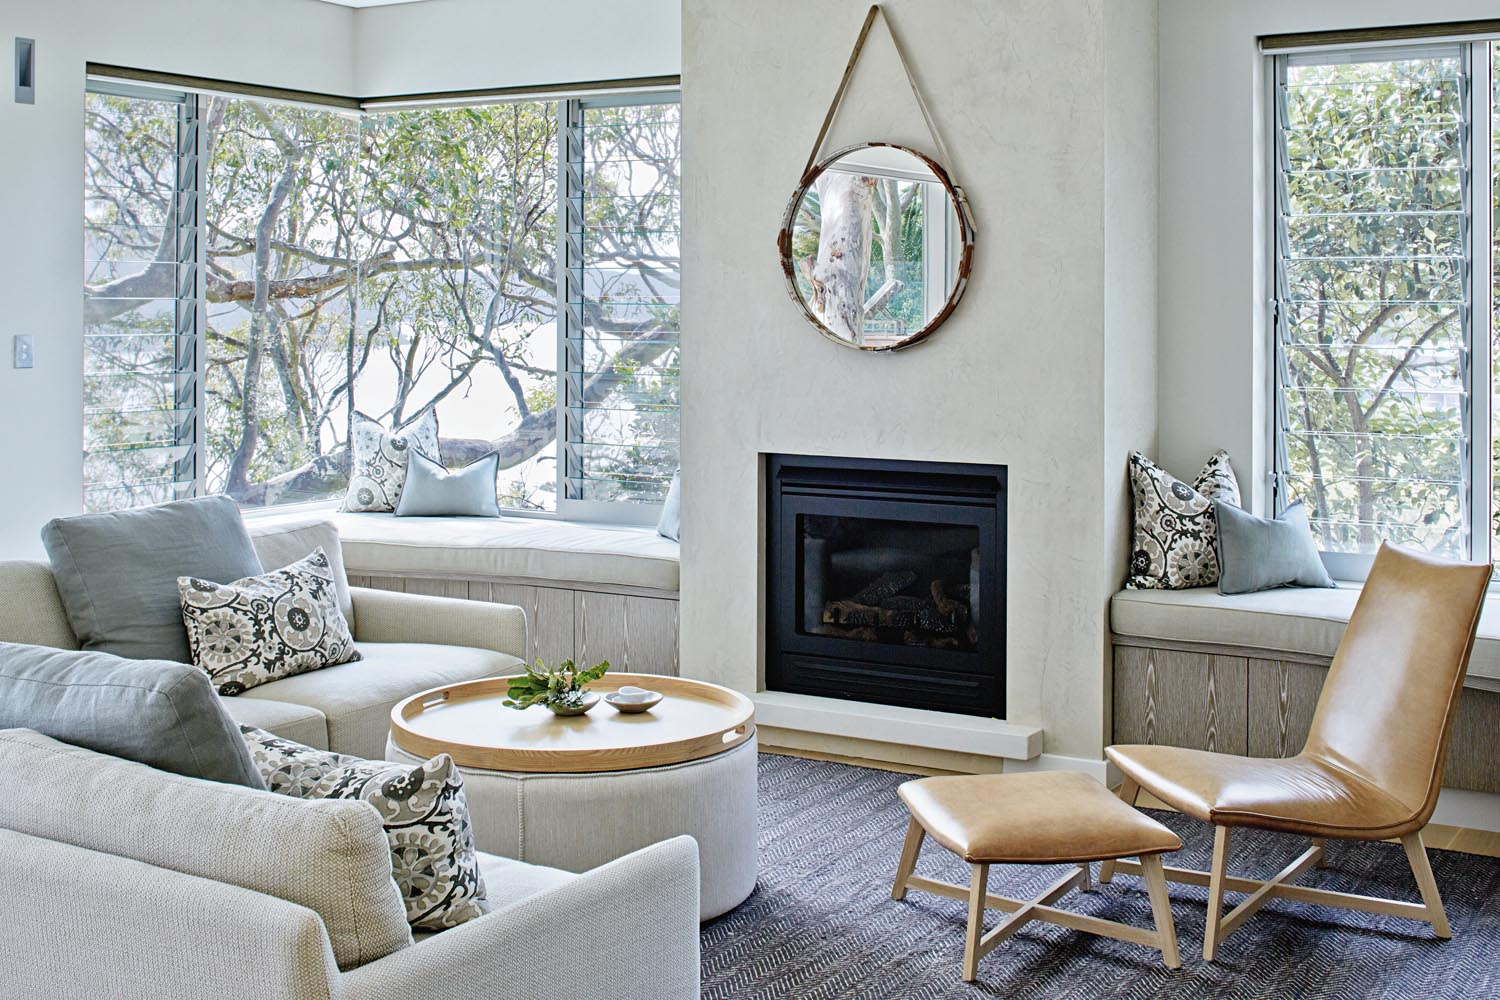 A palette of soft greys and browns adds warmth to the living area